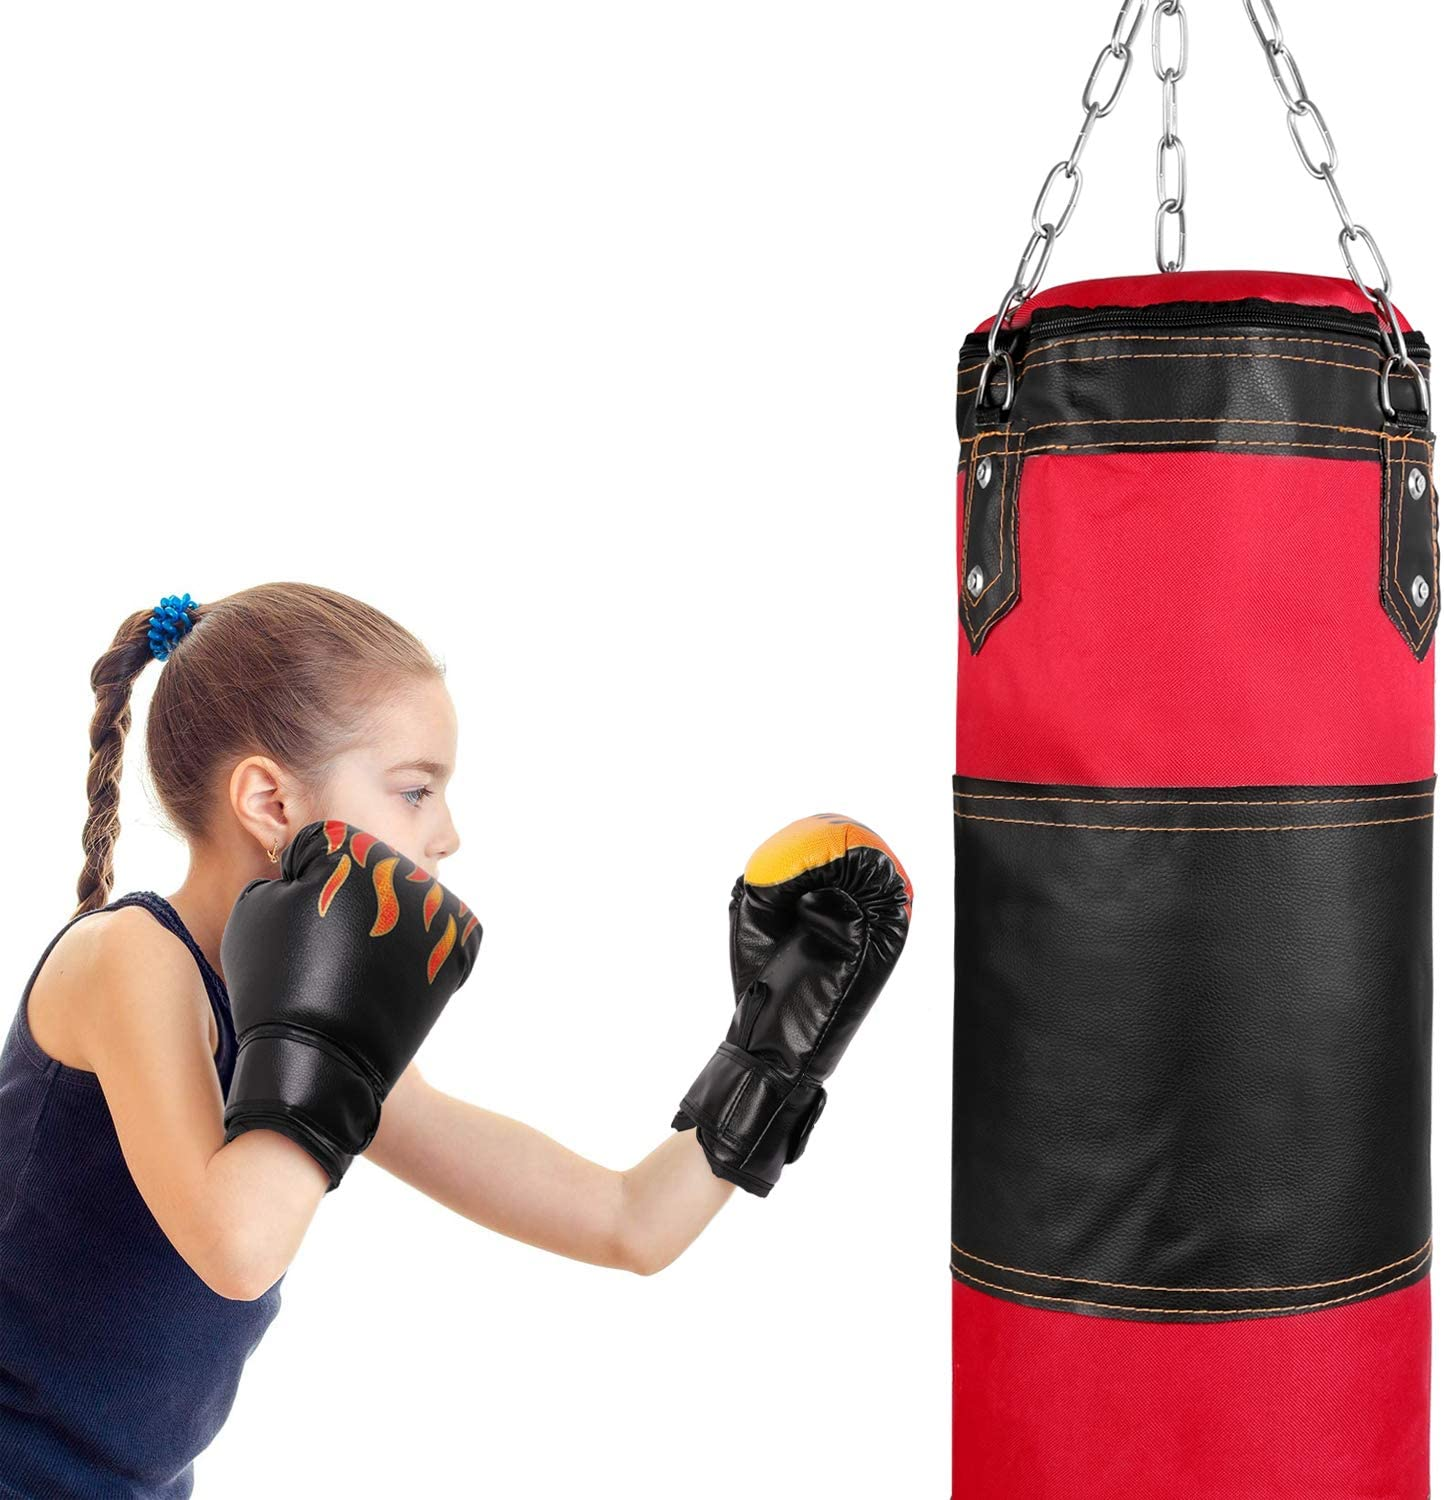 Odoland 2FT Punching Bag UNFILLED Muay Thai Heavy Bag Boxing MMA Fitness Workout Training Kick Boxing Punching Bag